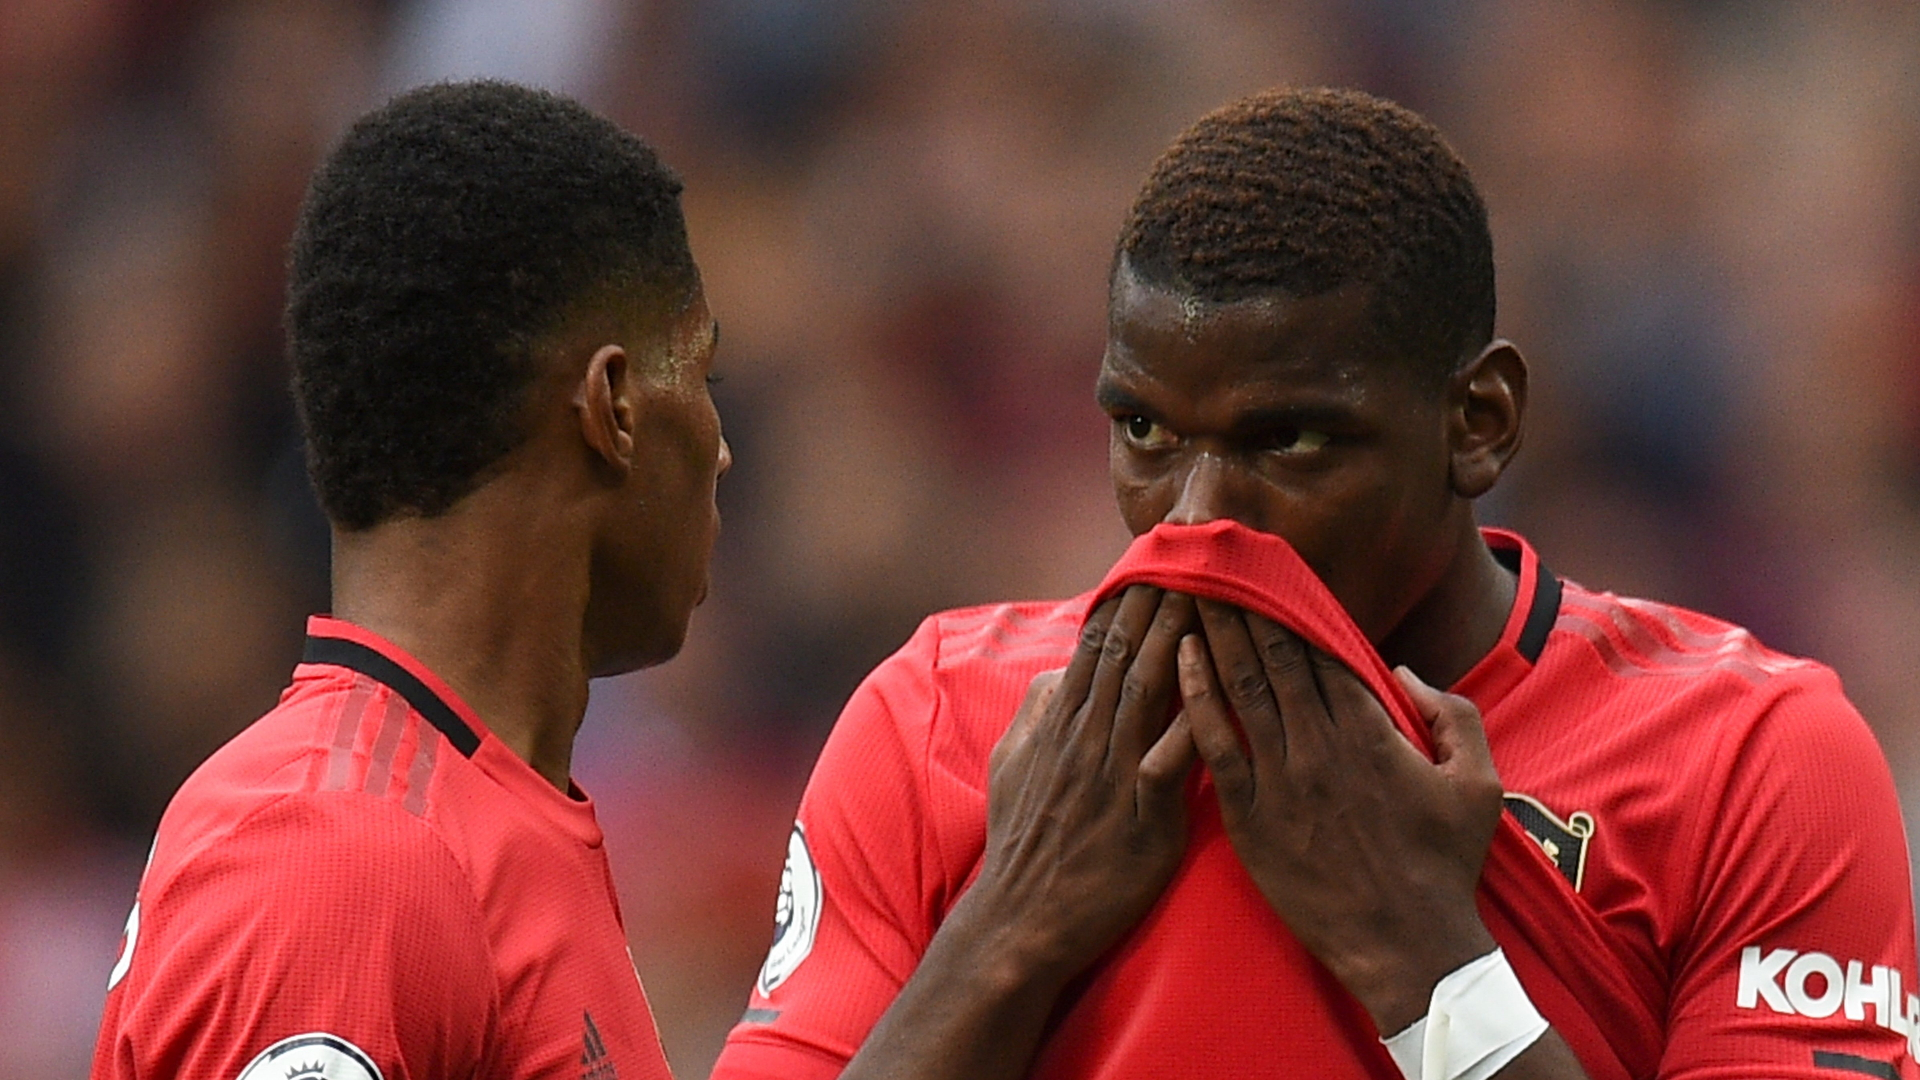 Gary Neville backs Manchester United star Paul Pogba to be Premier League's player of the year - Bóng Đá